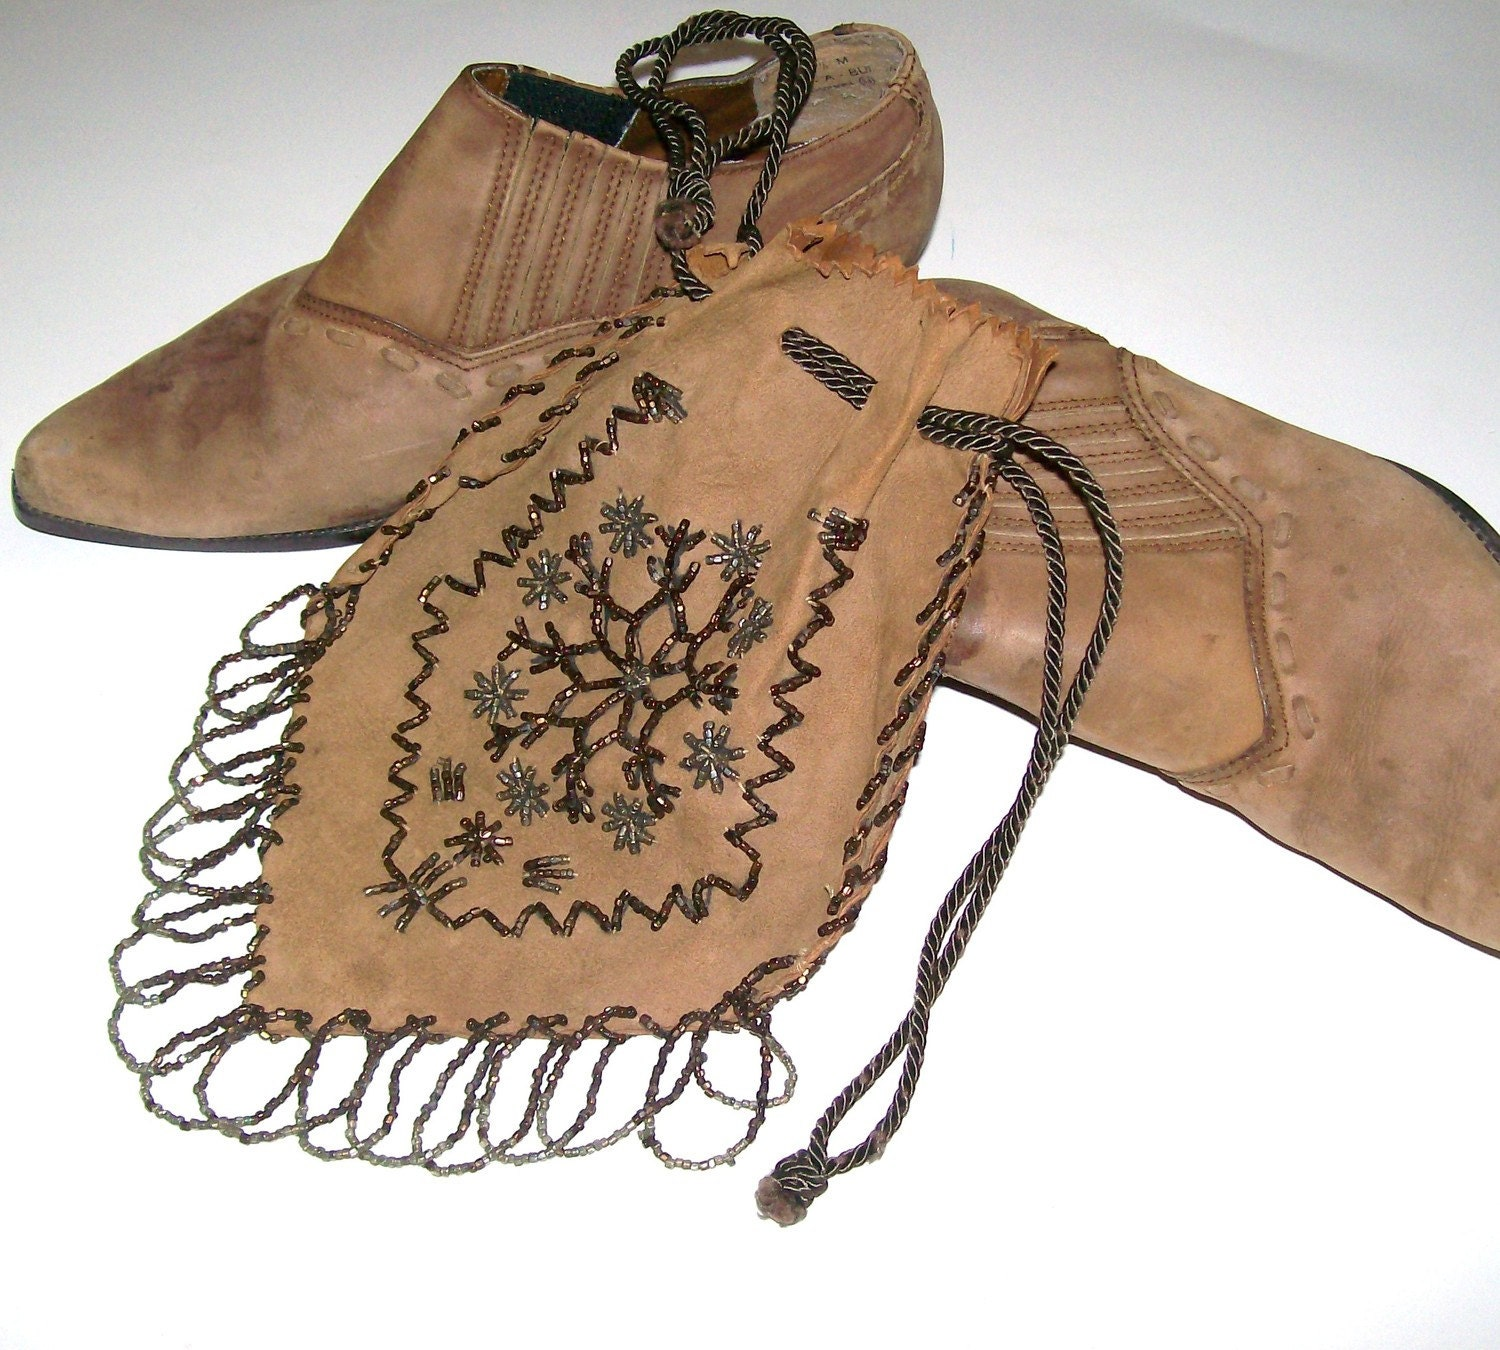 Vintage Tan Suede Boots Southwest Santa Fe Style American Cowgirl Boho URban Chic / Suede Drawsting Purse Size 7 1/2 M